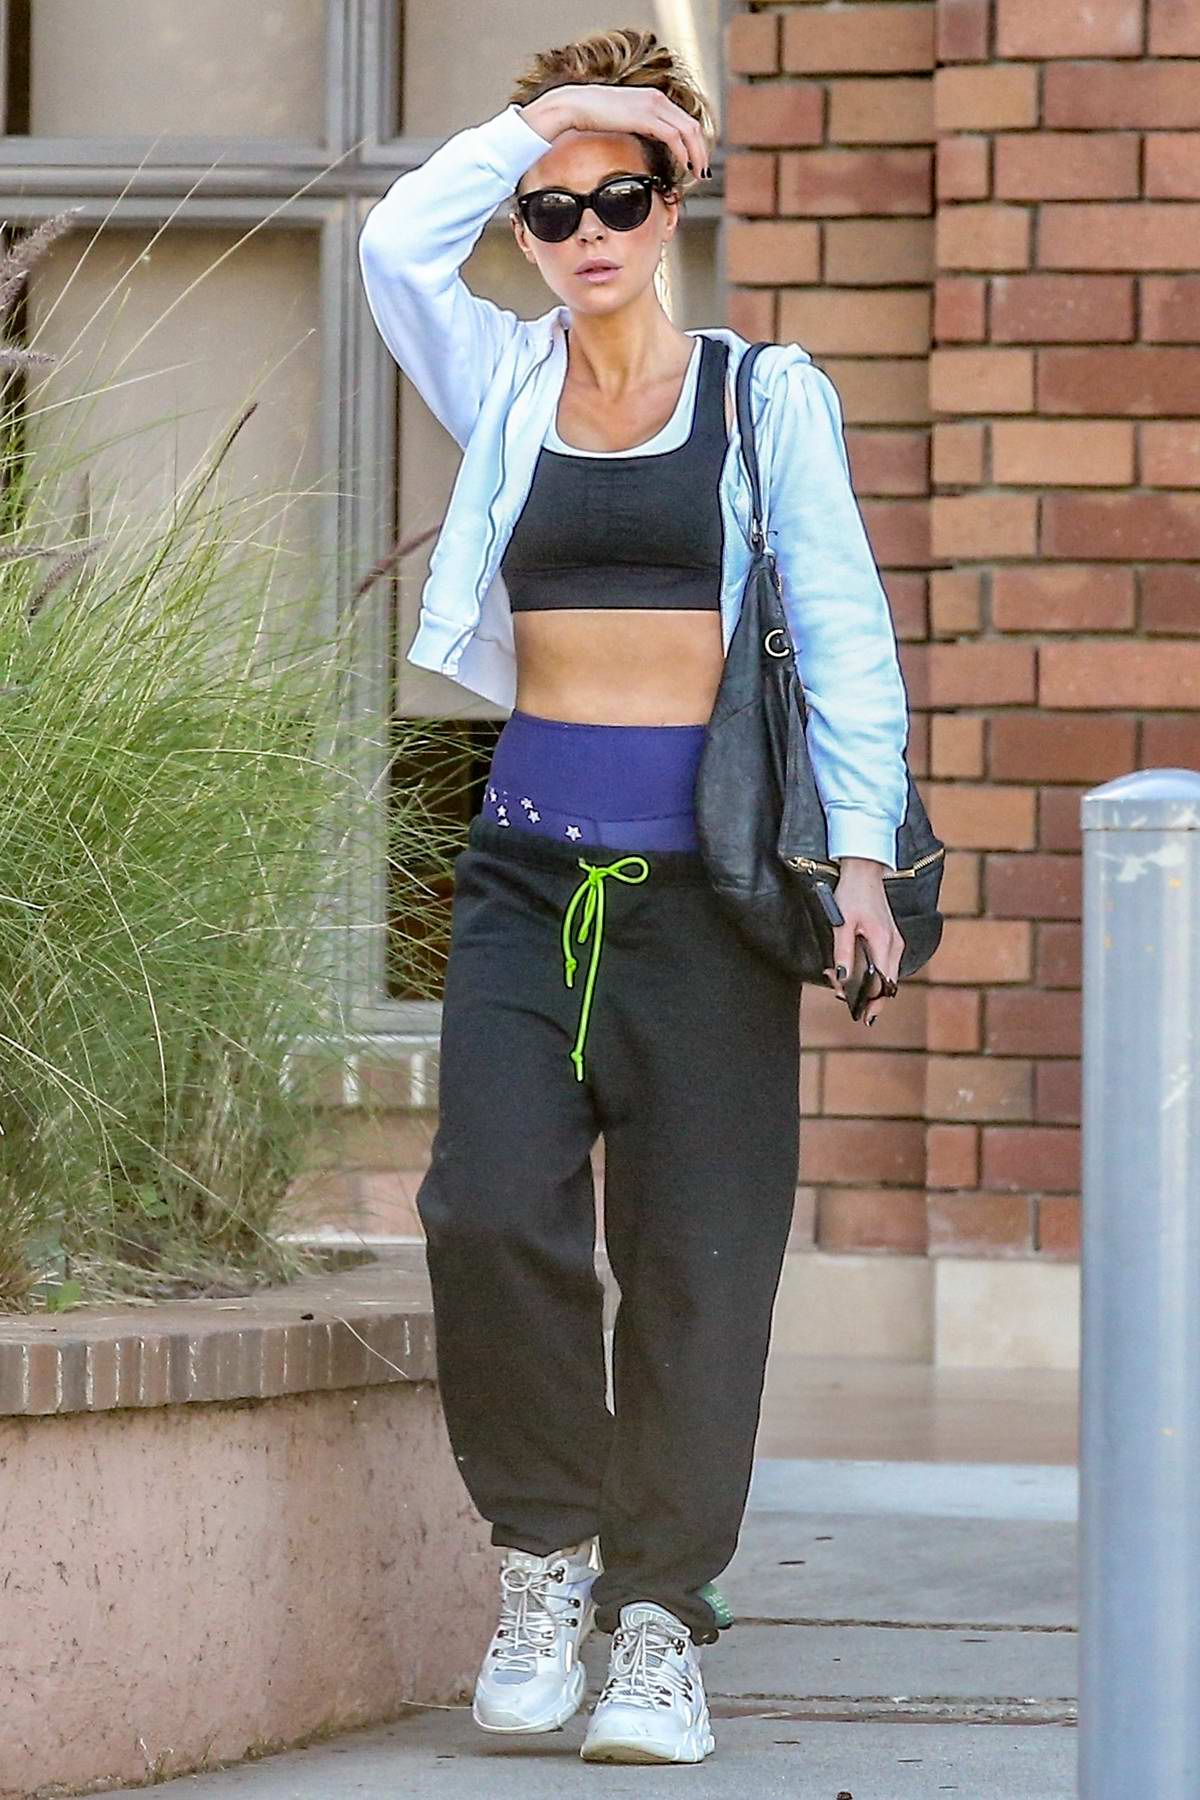 Kate Beckinsale shows off her toned abs in a crop top as she heads to a dance class in Pacific Palisades, California